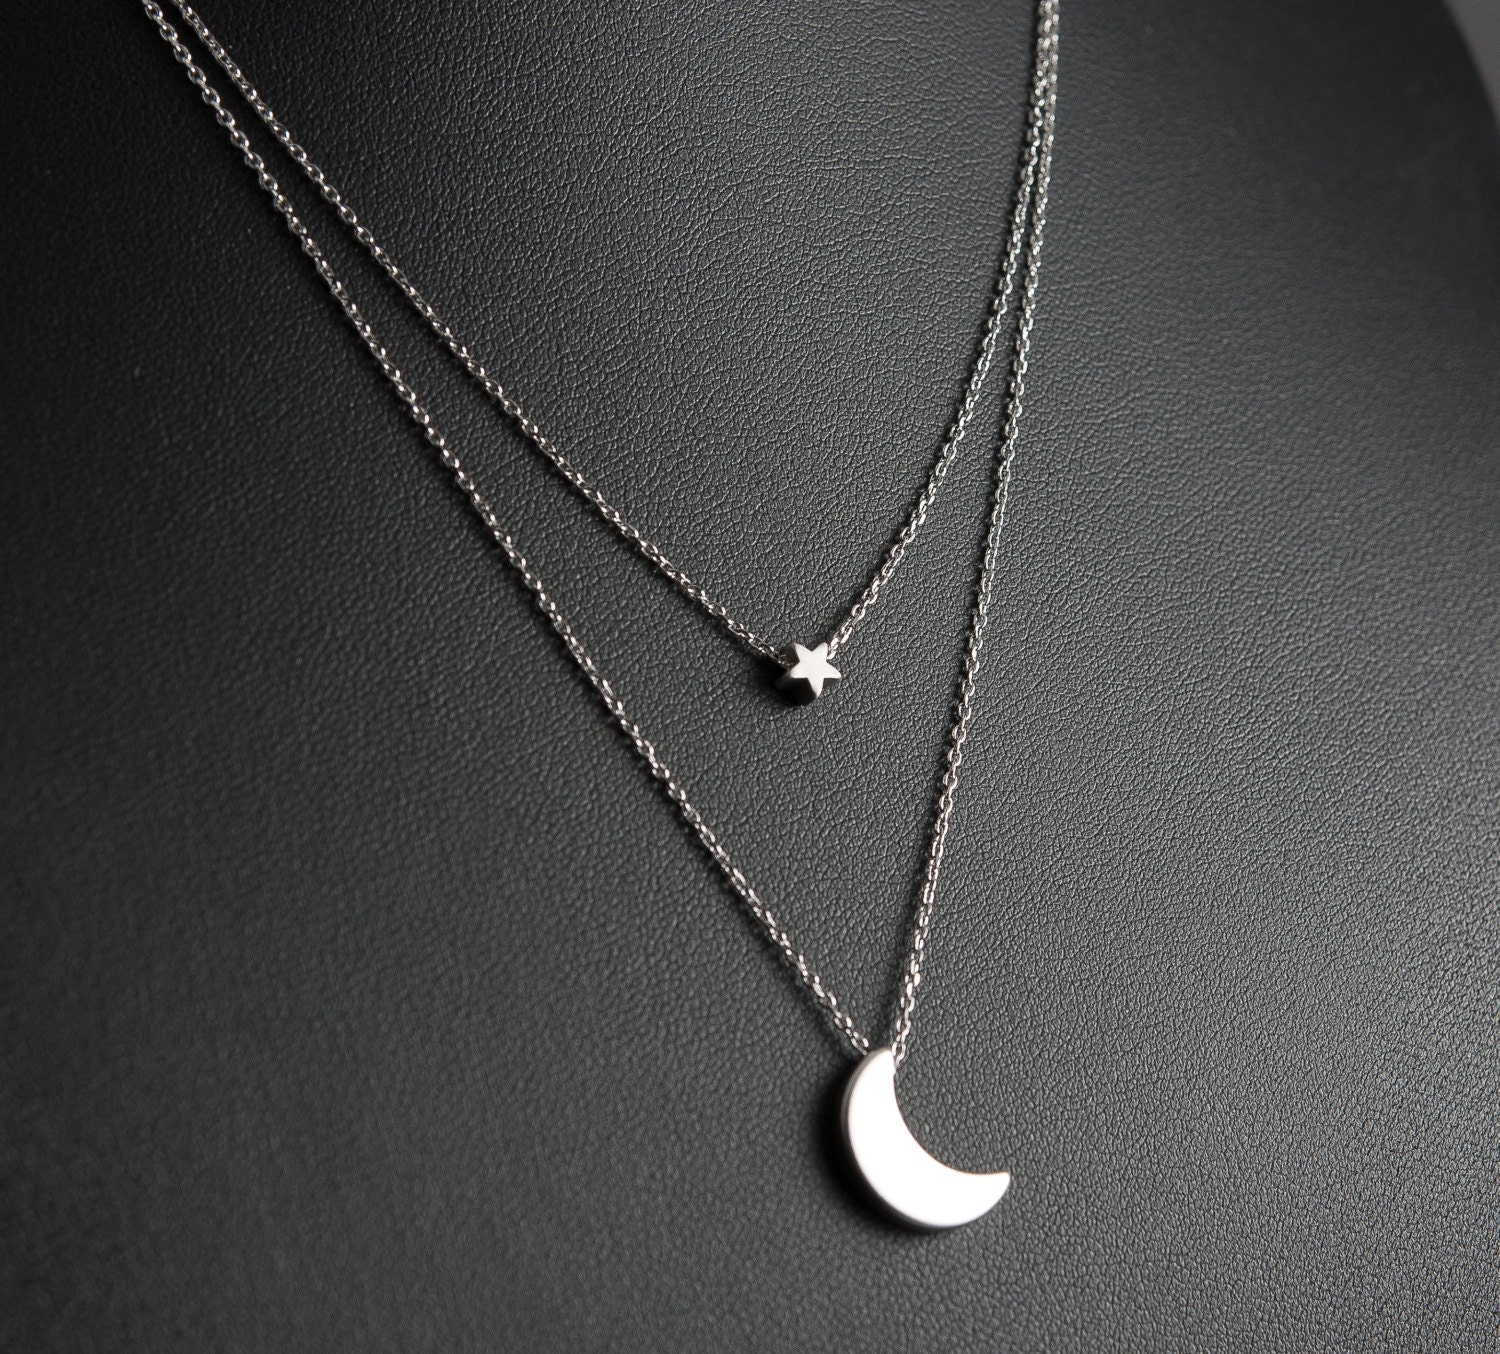 Silver Moon And Star Layered Necklace Dainty Necklace